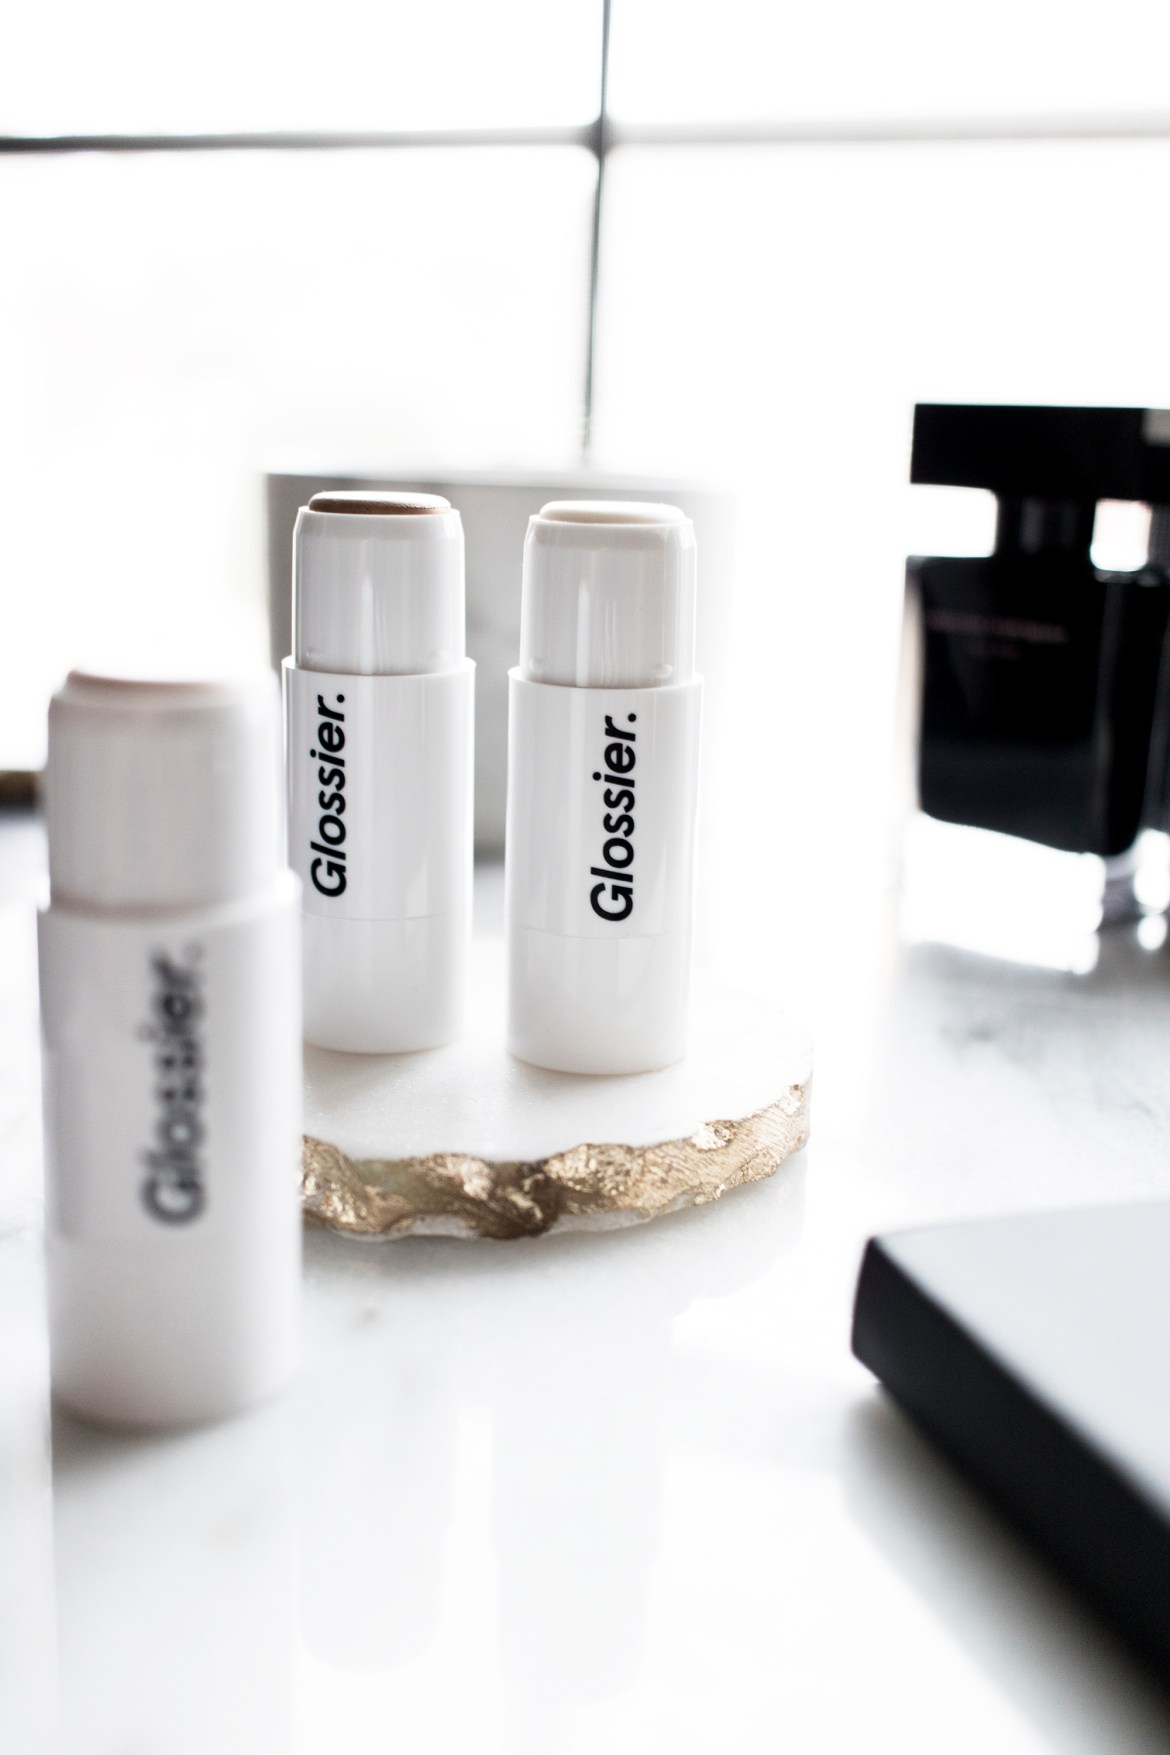 Are the Glossier Haloscopes worth the hype?